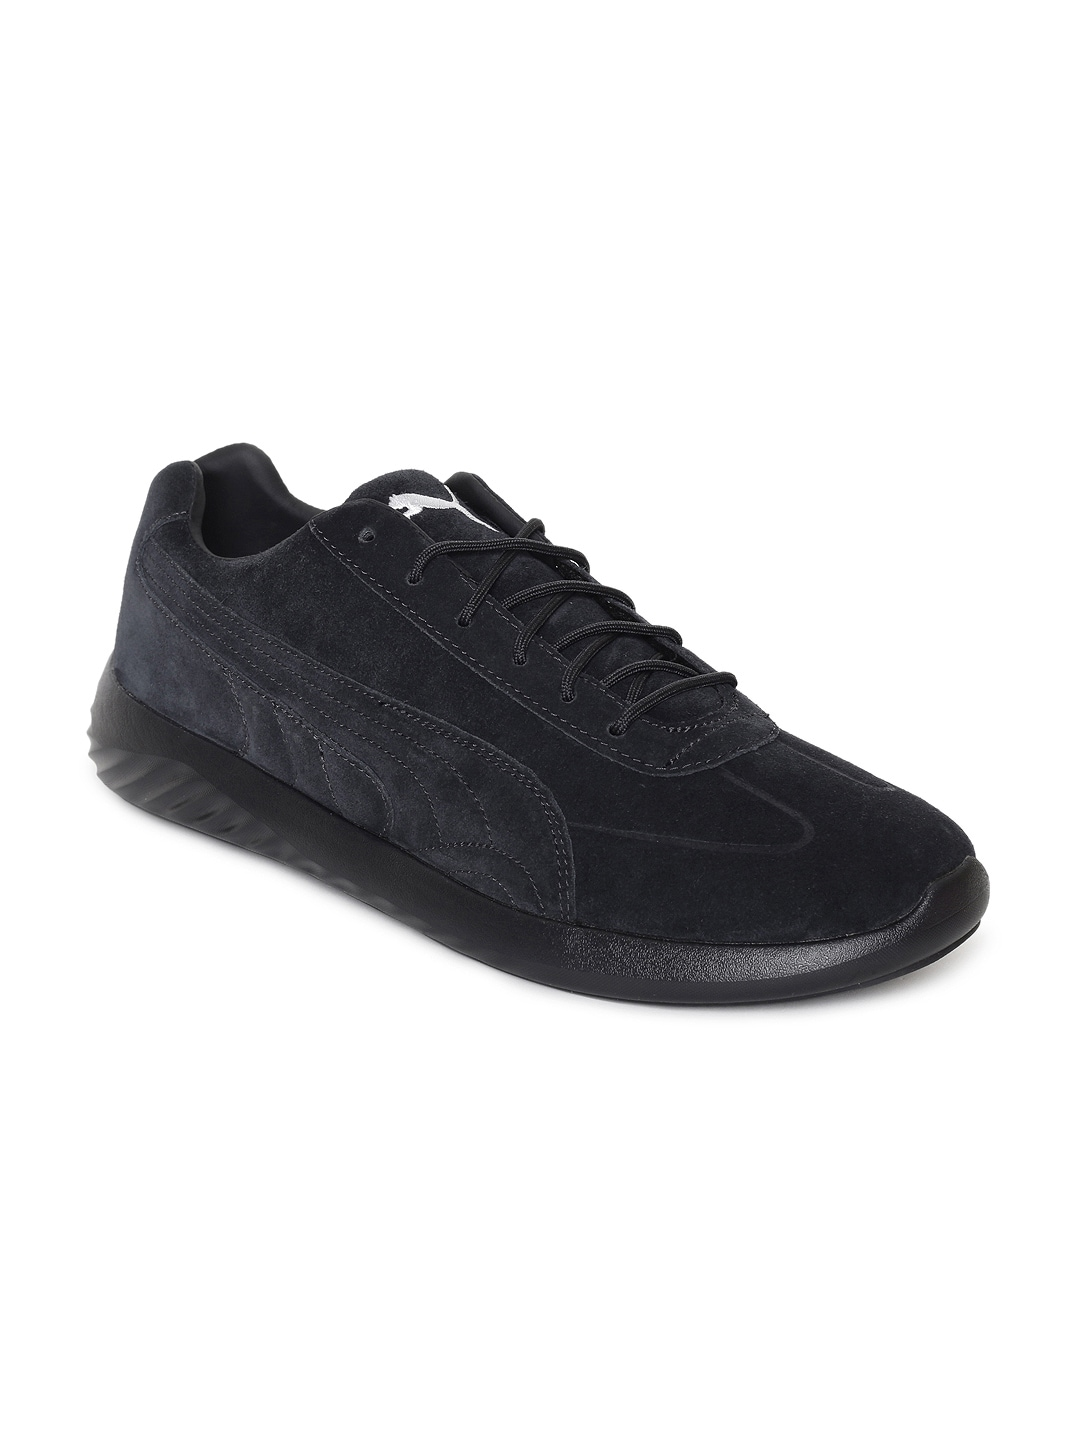 bf35ee5566849a Puma Bmw Shoes - Buy Puma Bmw Shoes online in India